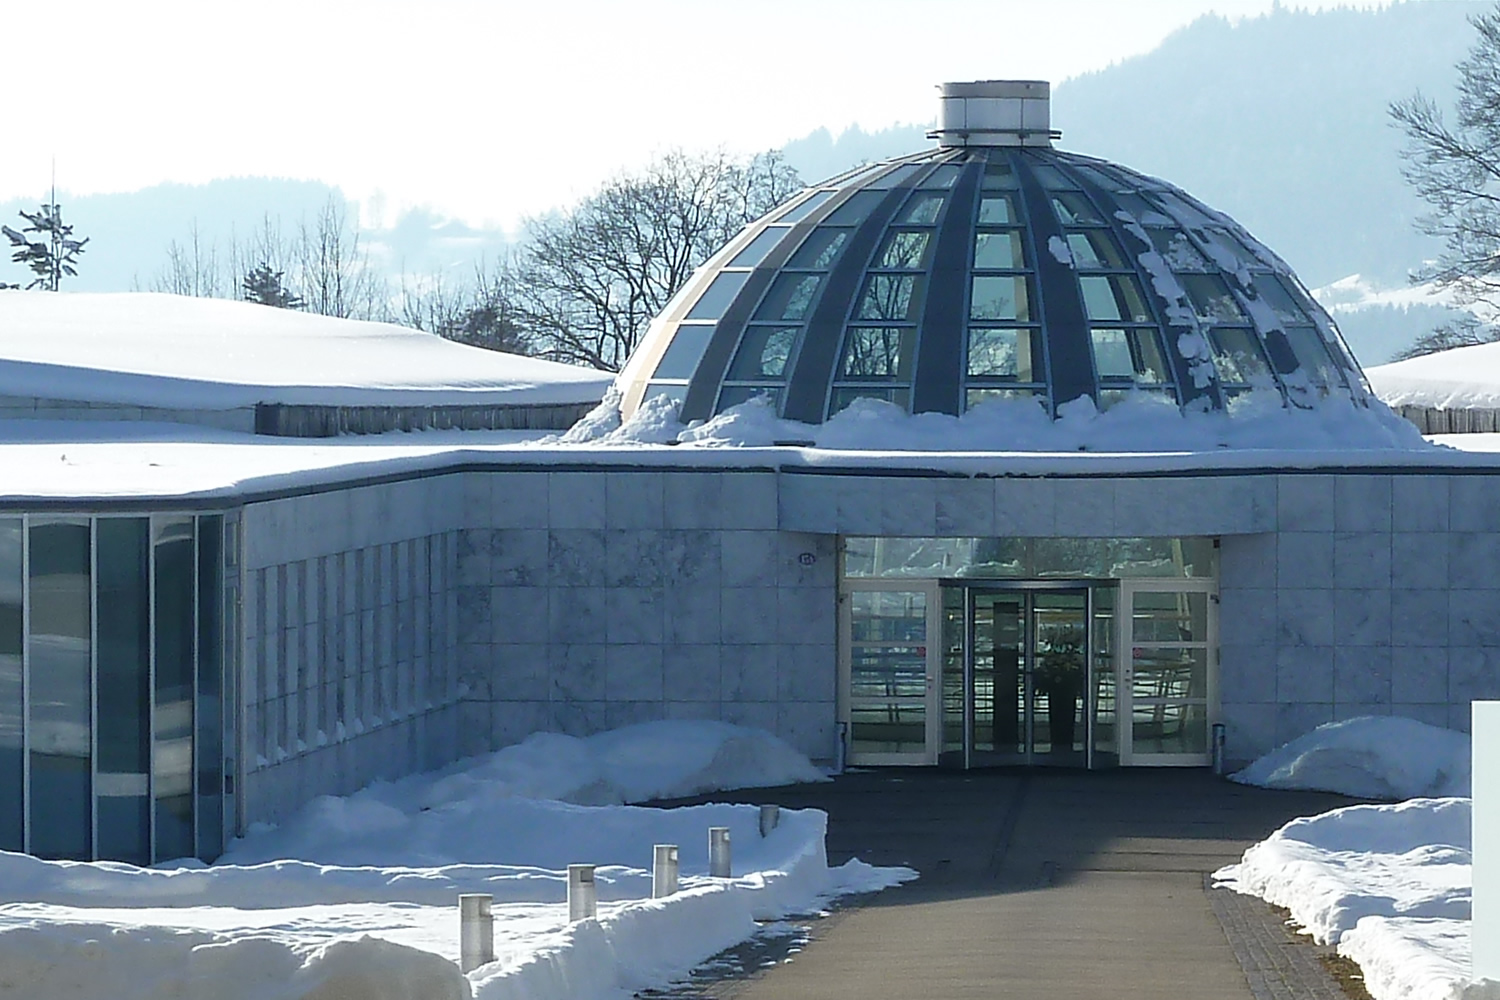 University of St. Gallen Convention and Executive Education Center